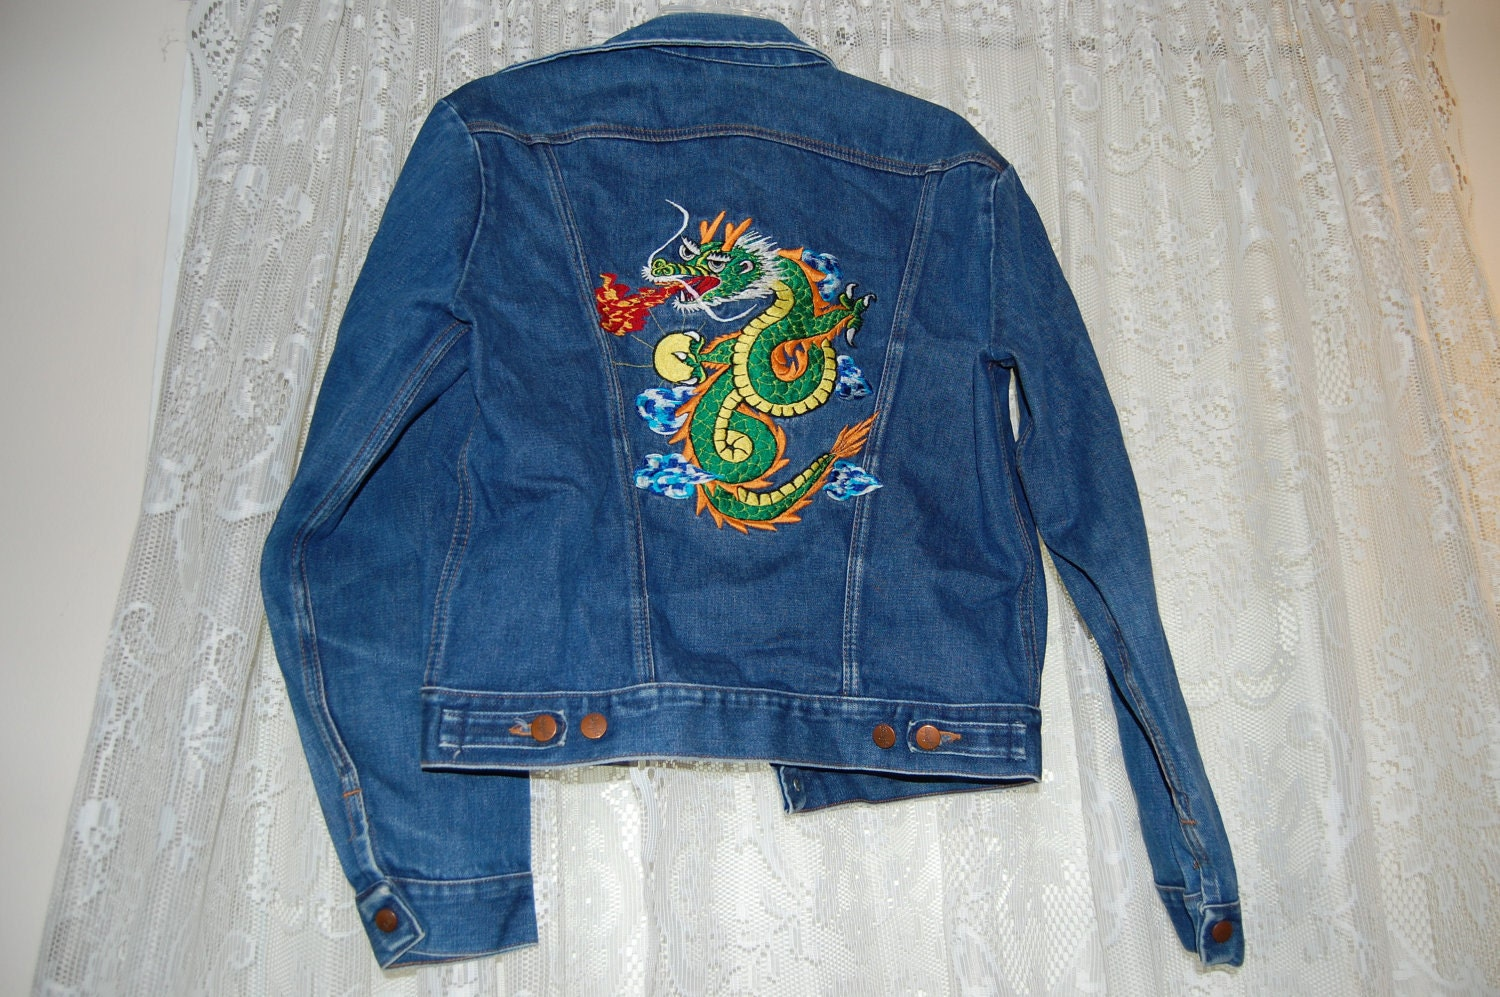 Wrangler Denim Jacket With Dragon Embroidery